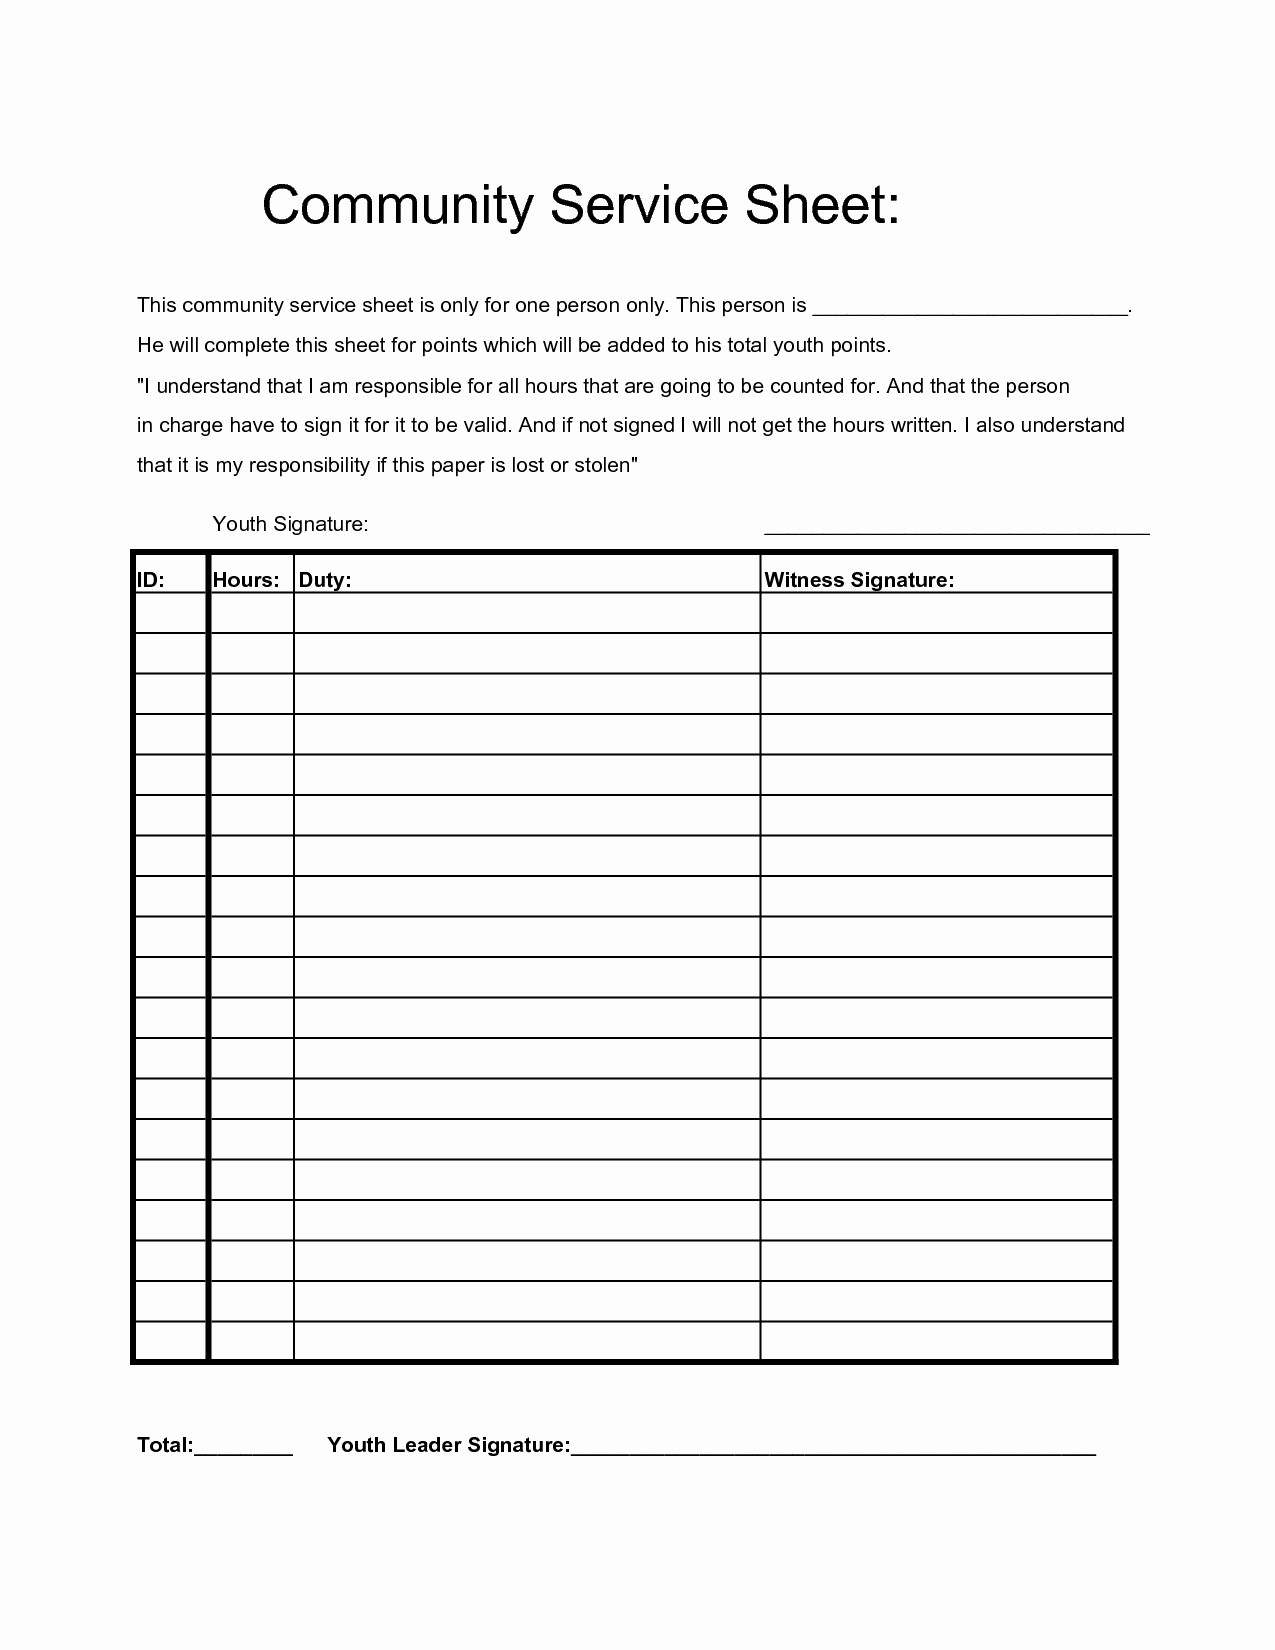 Community Service Hours form Template Beautiful Munity Service Hours Sheet